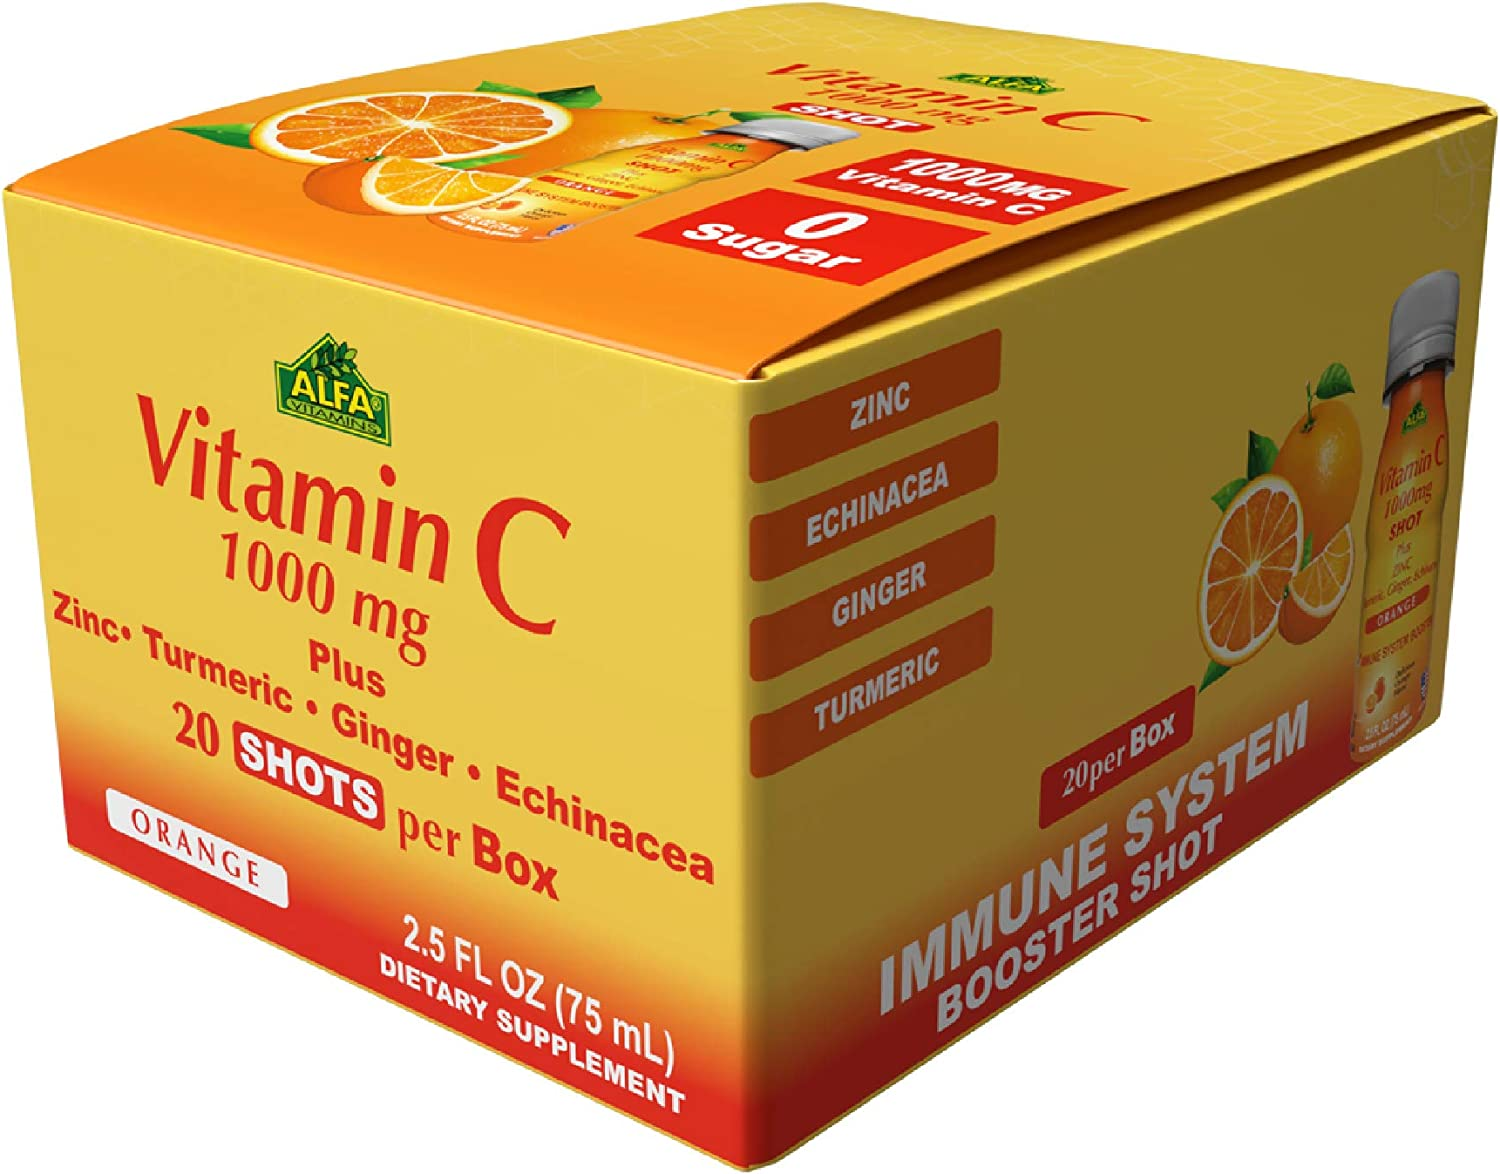 Vitamin C 1,000mg Shot by Alfa Vitamins - 20 Pack - Plus Zinc, Turmeric, Ginger, & Echinacea - Immune System Booster - Fight The Common Cold - Orange Flavor - 2.5 FL OZ per Bottle - 20 Pack